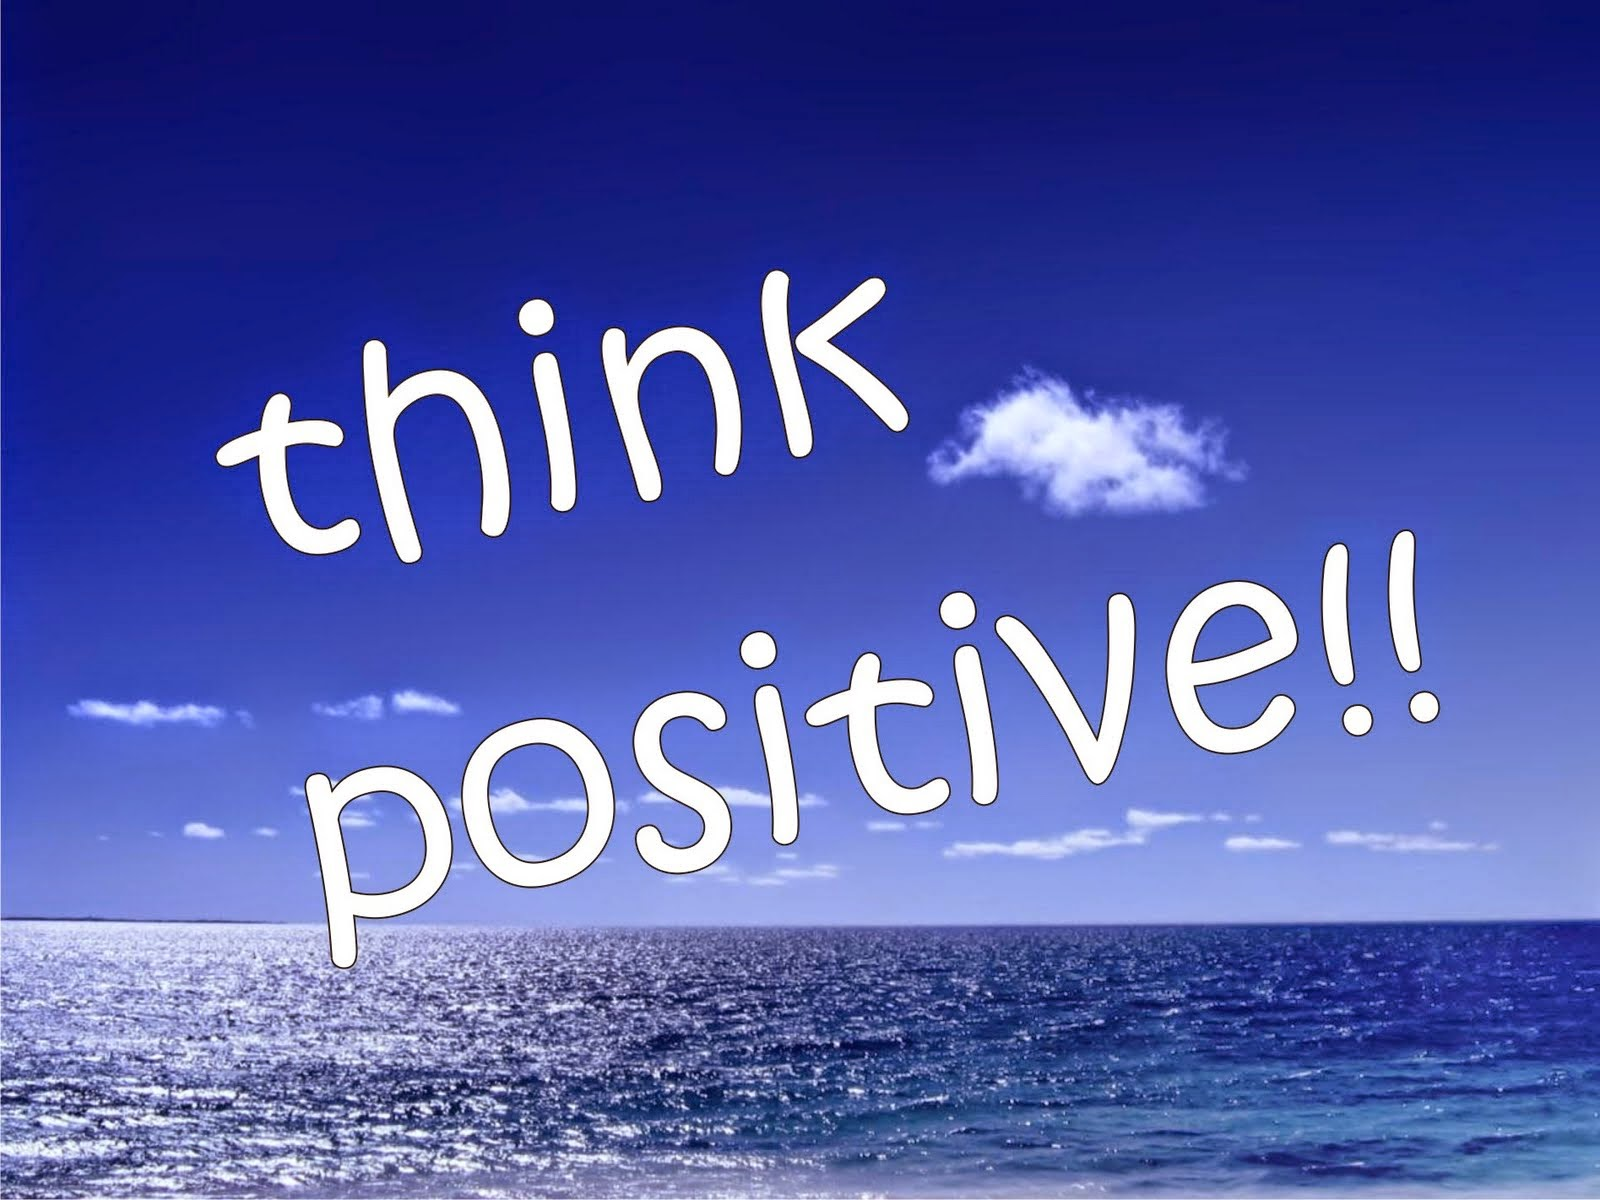 essay on power of positive thinking best images about positive  health beauty and nutrition how to live positive life in how to live positive life in power of positive thinking essay the